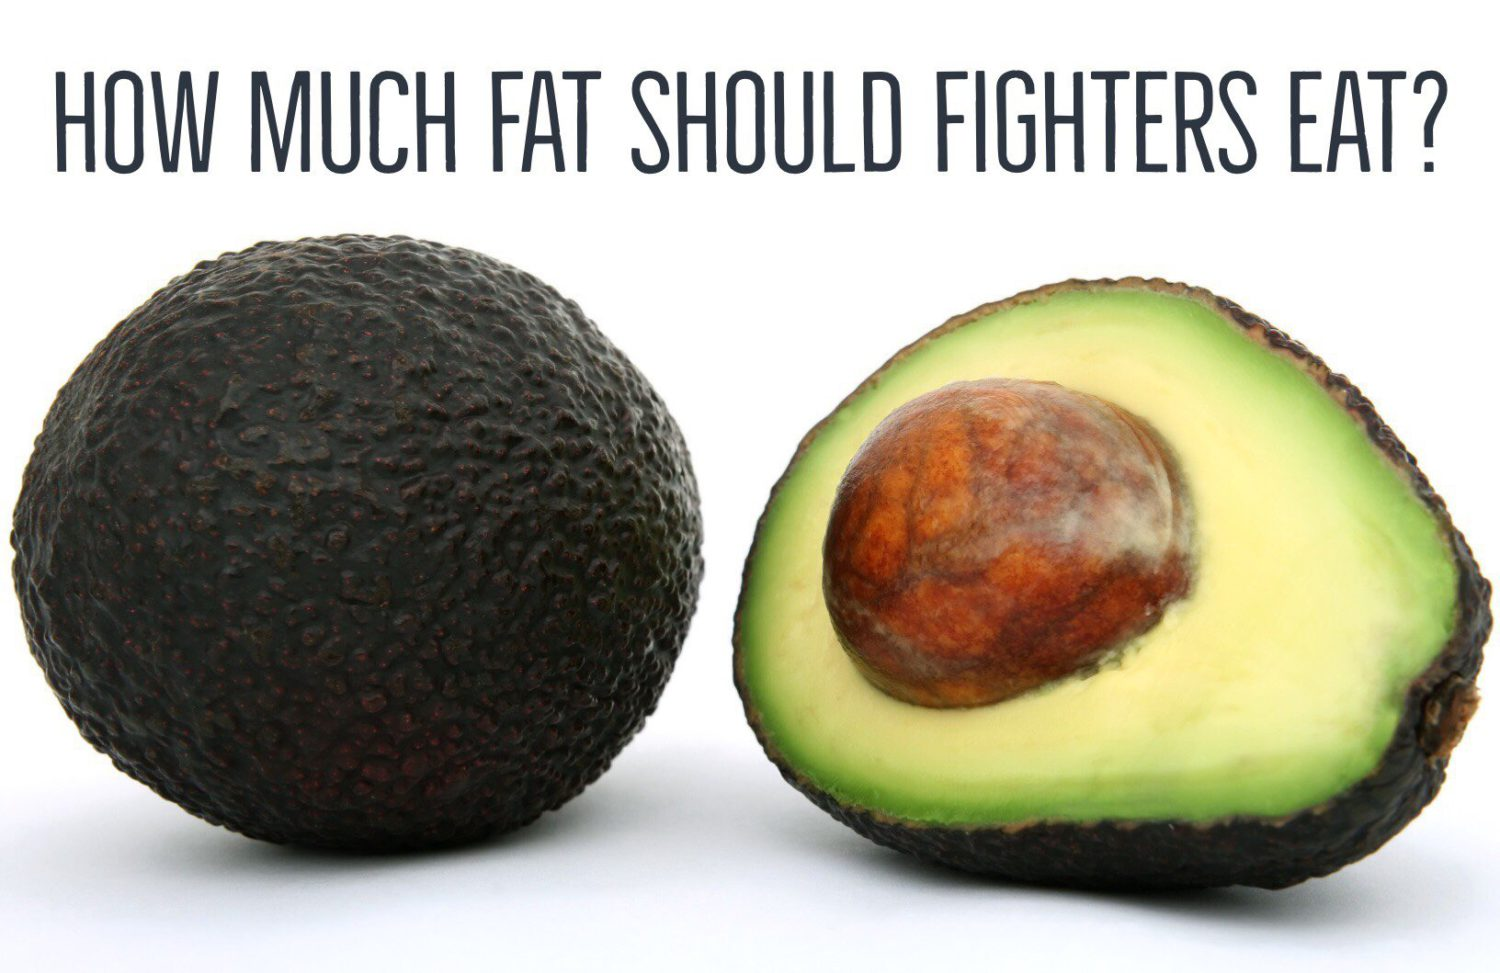 How much fat should fighters eat?